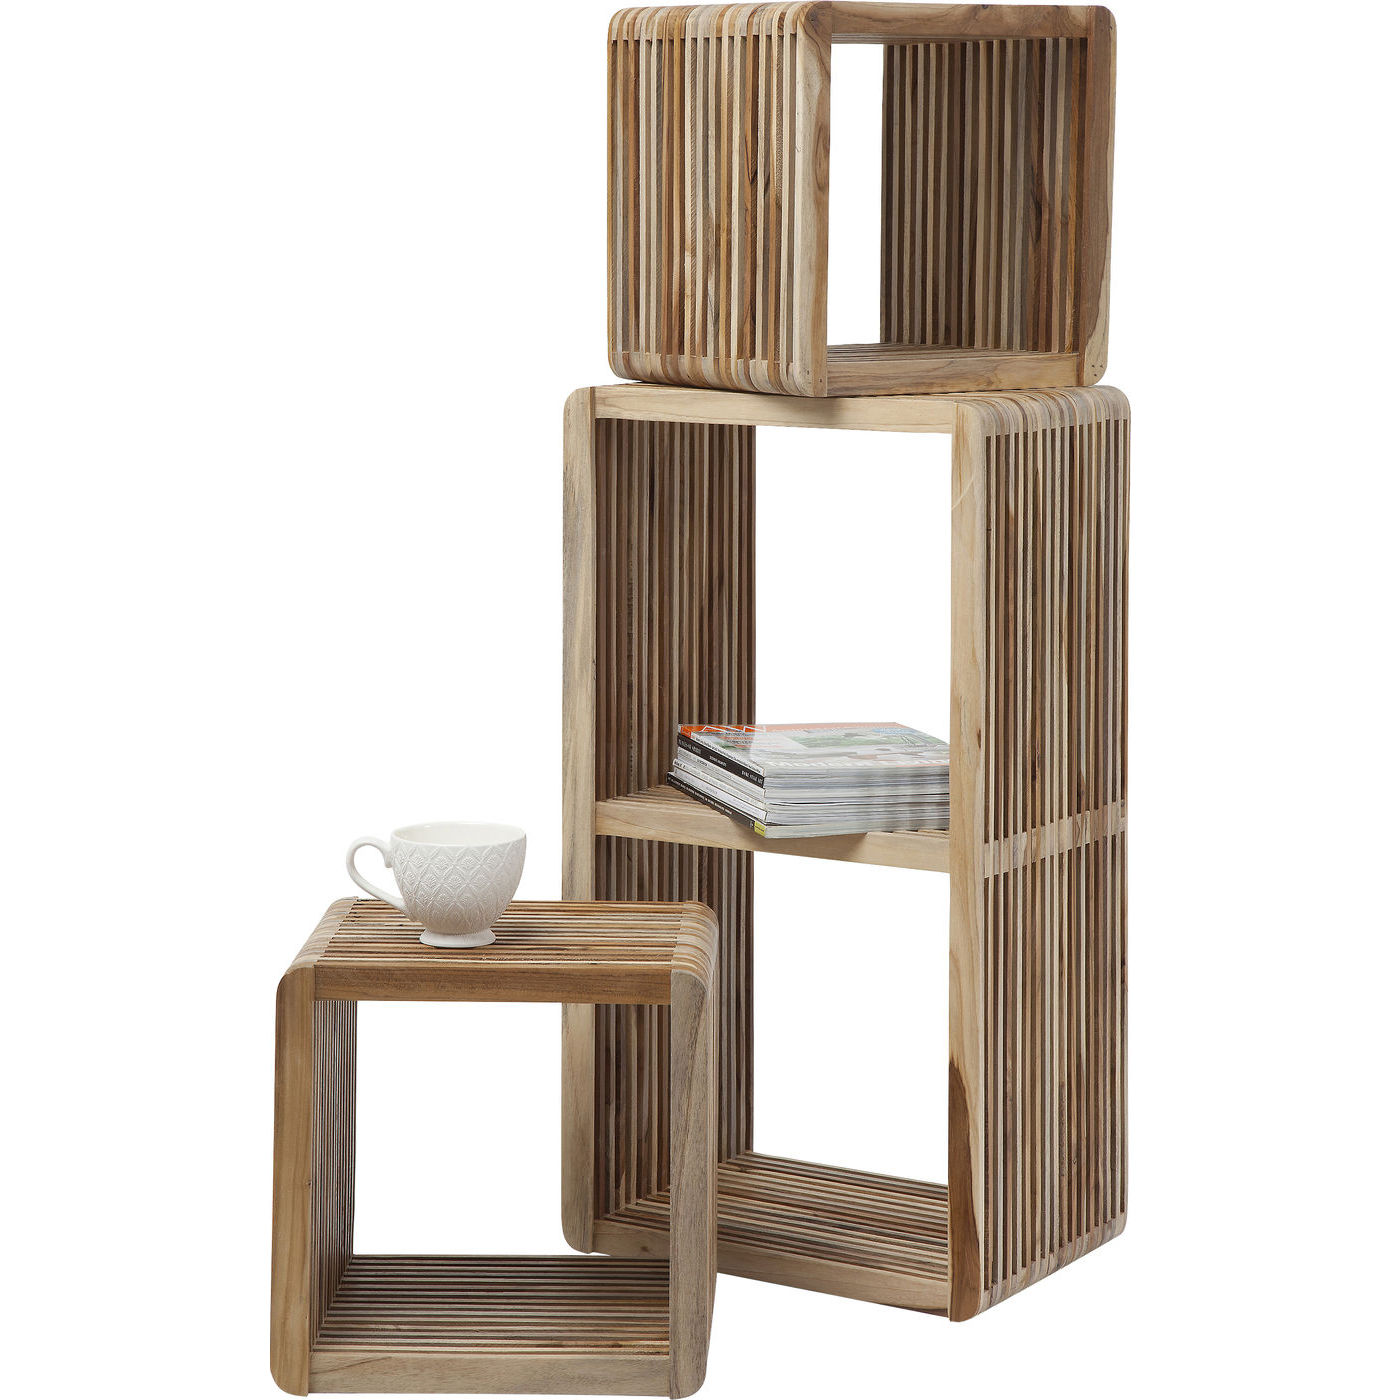 Image of   Kare Design Cube Micado Nature Reol